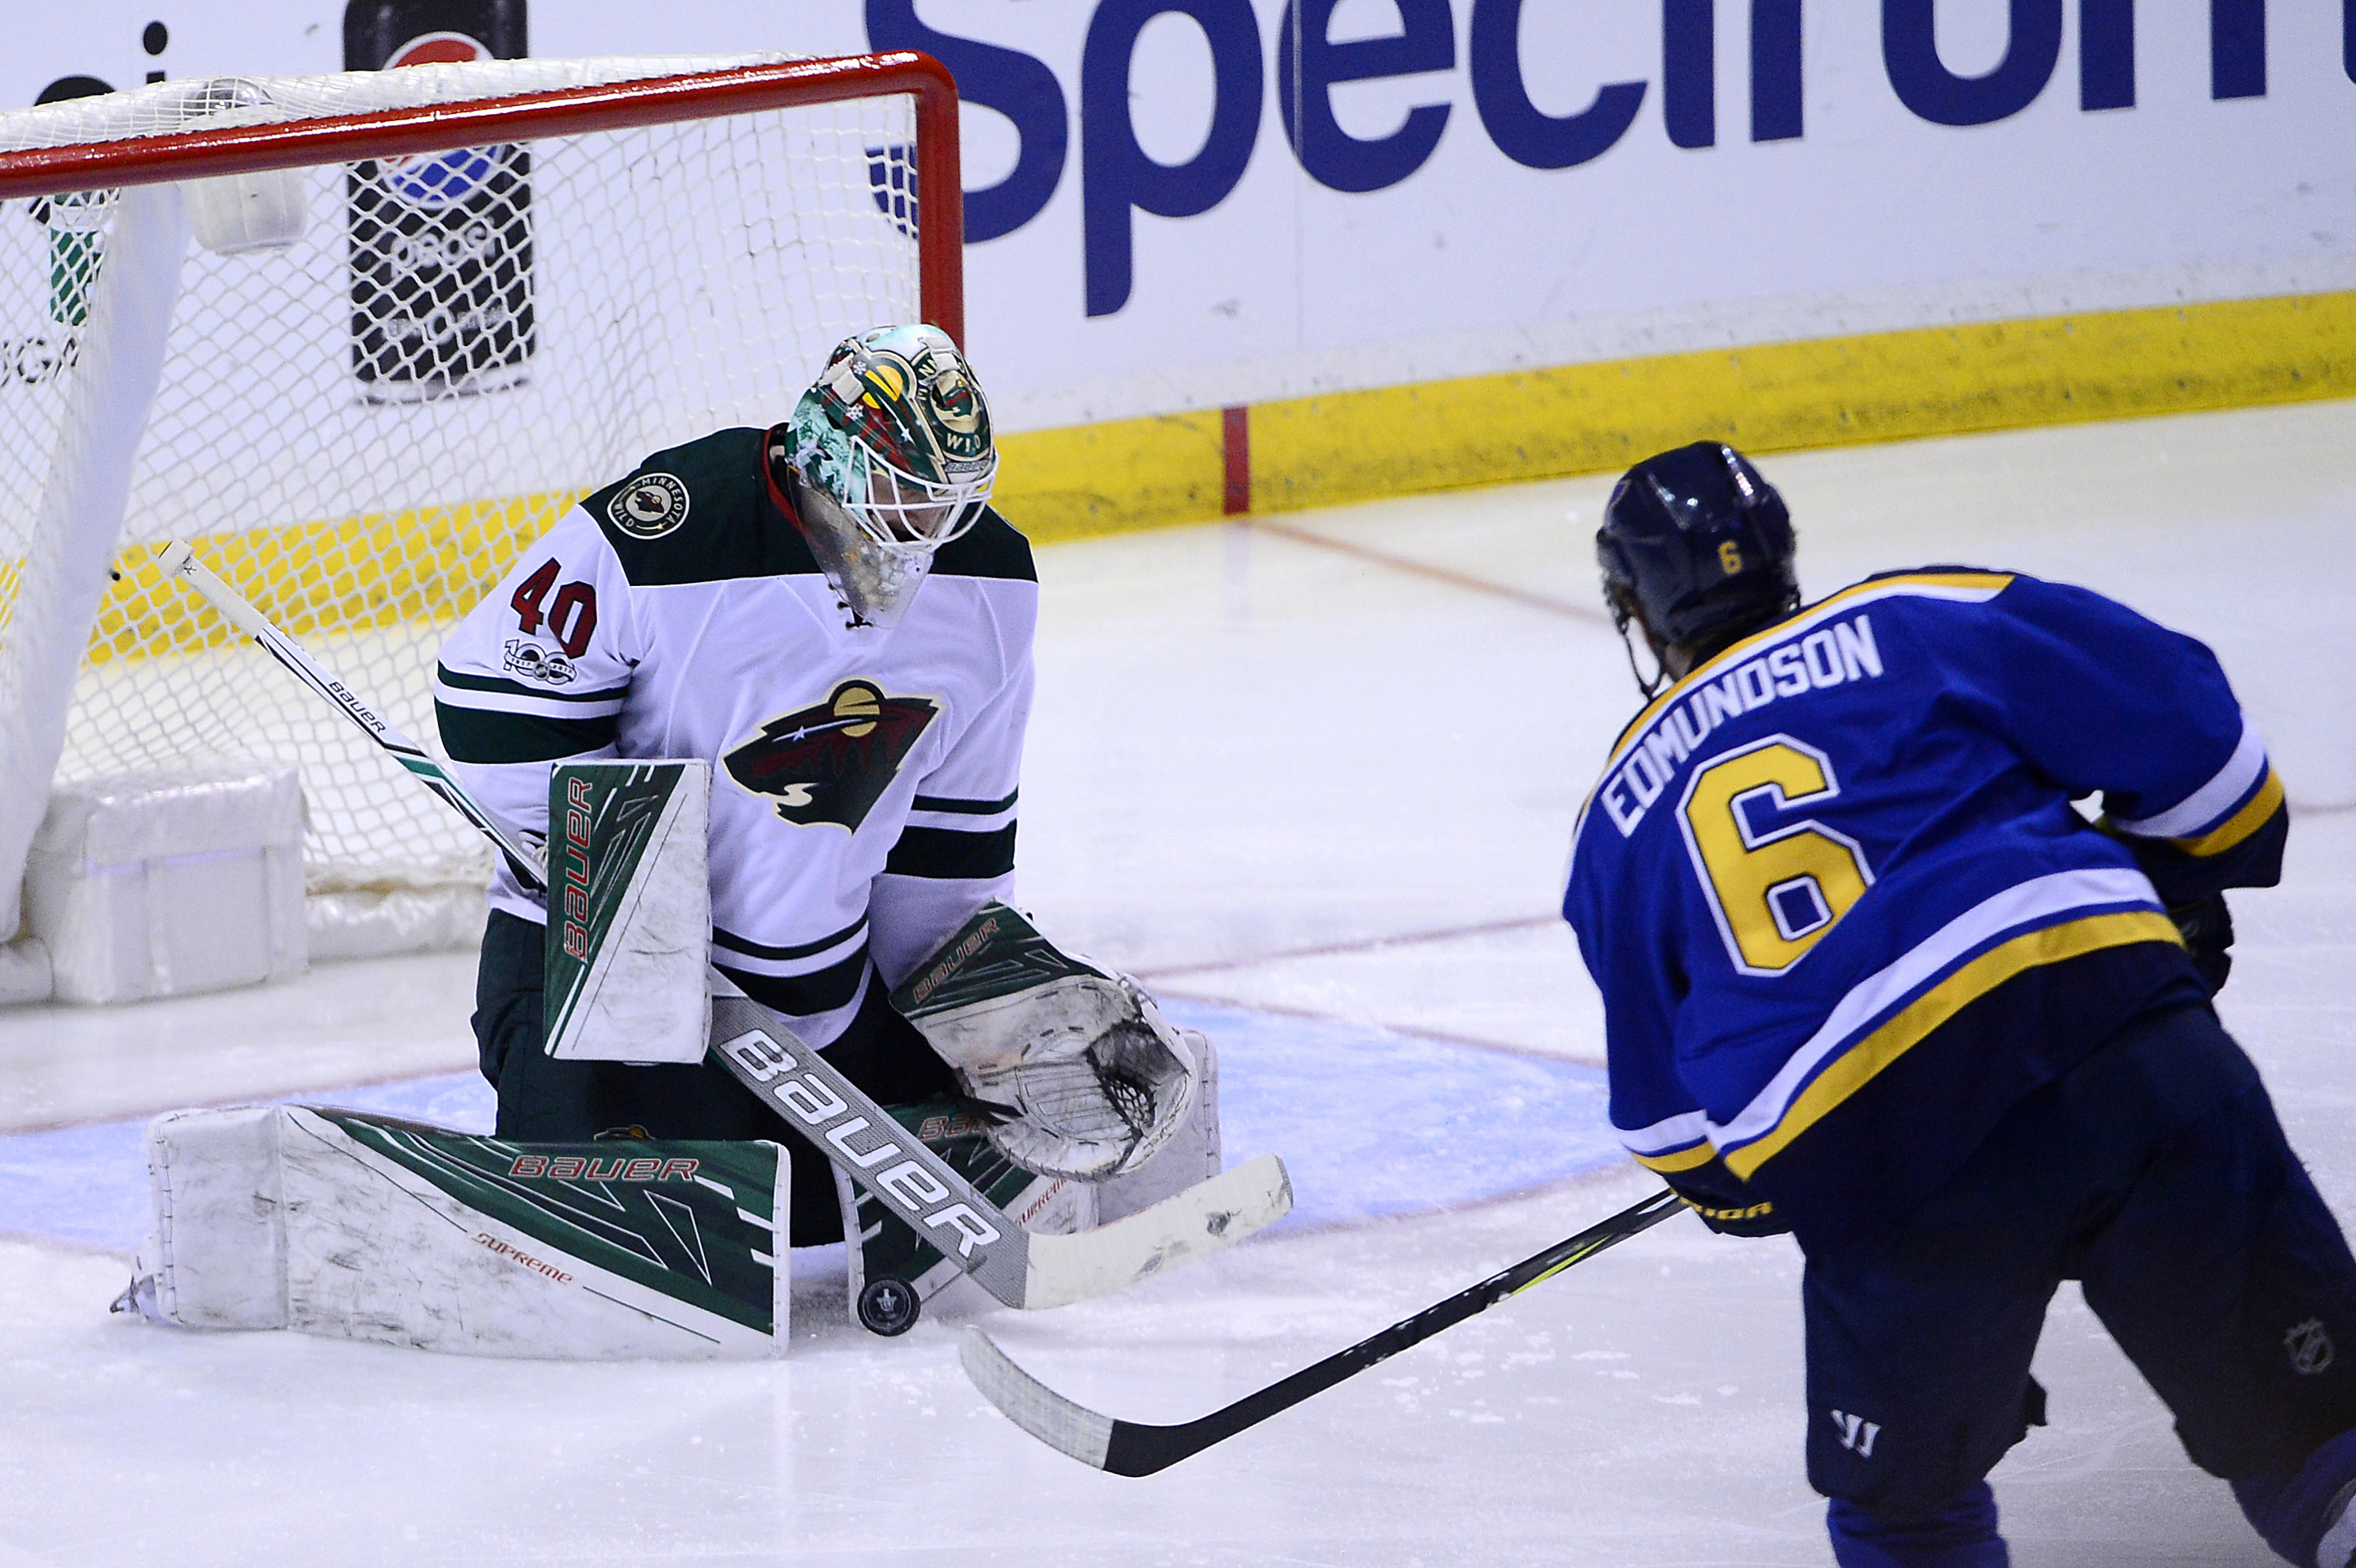 10021127-nhl-stanley-cup-playoffs-minnesota-wild-at-st.-louis-blues